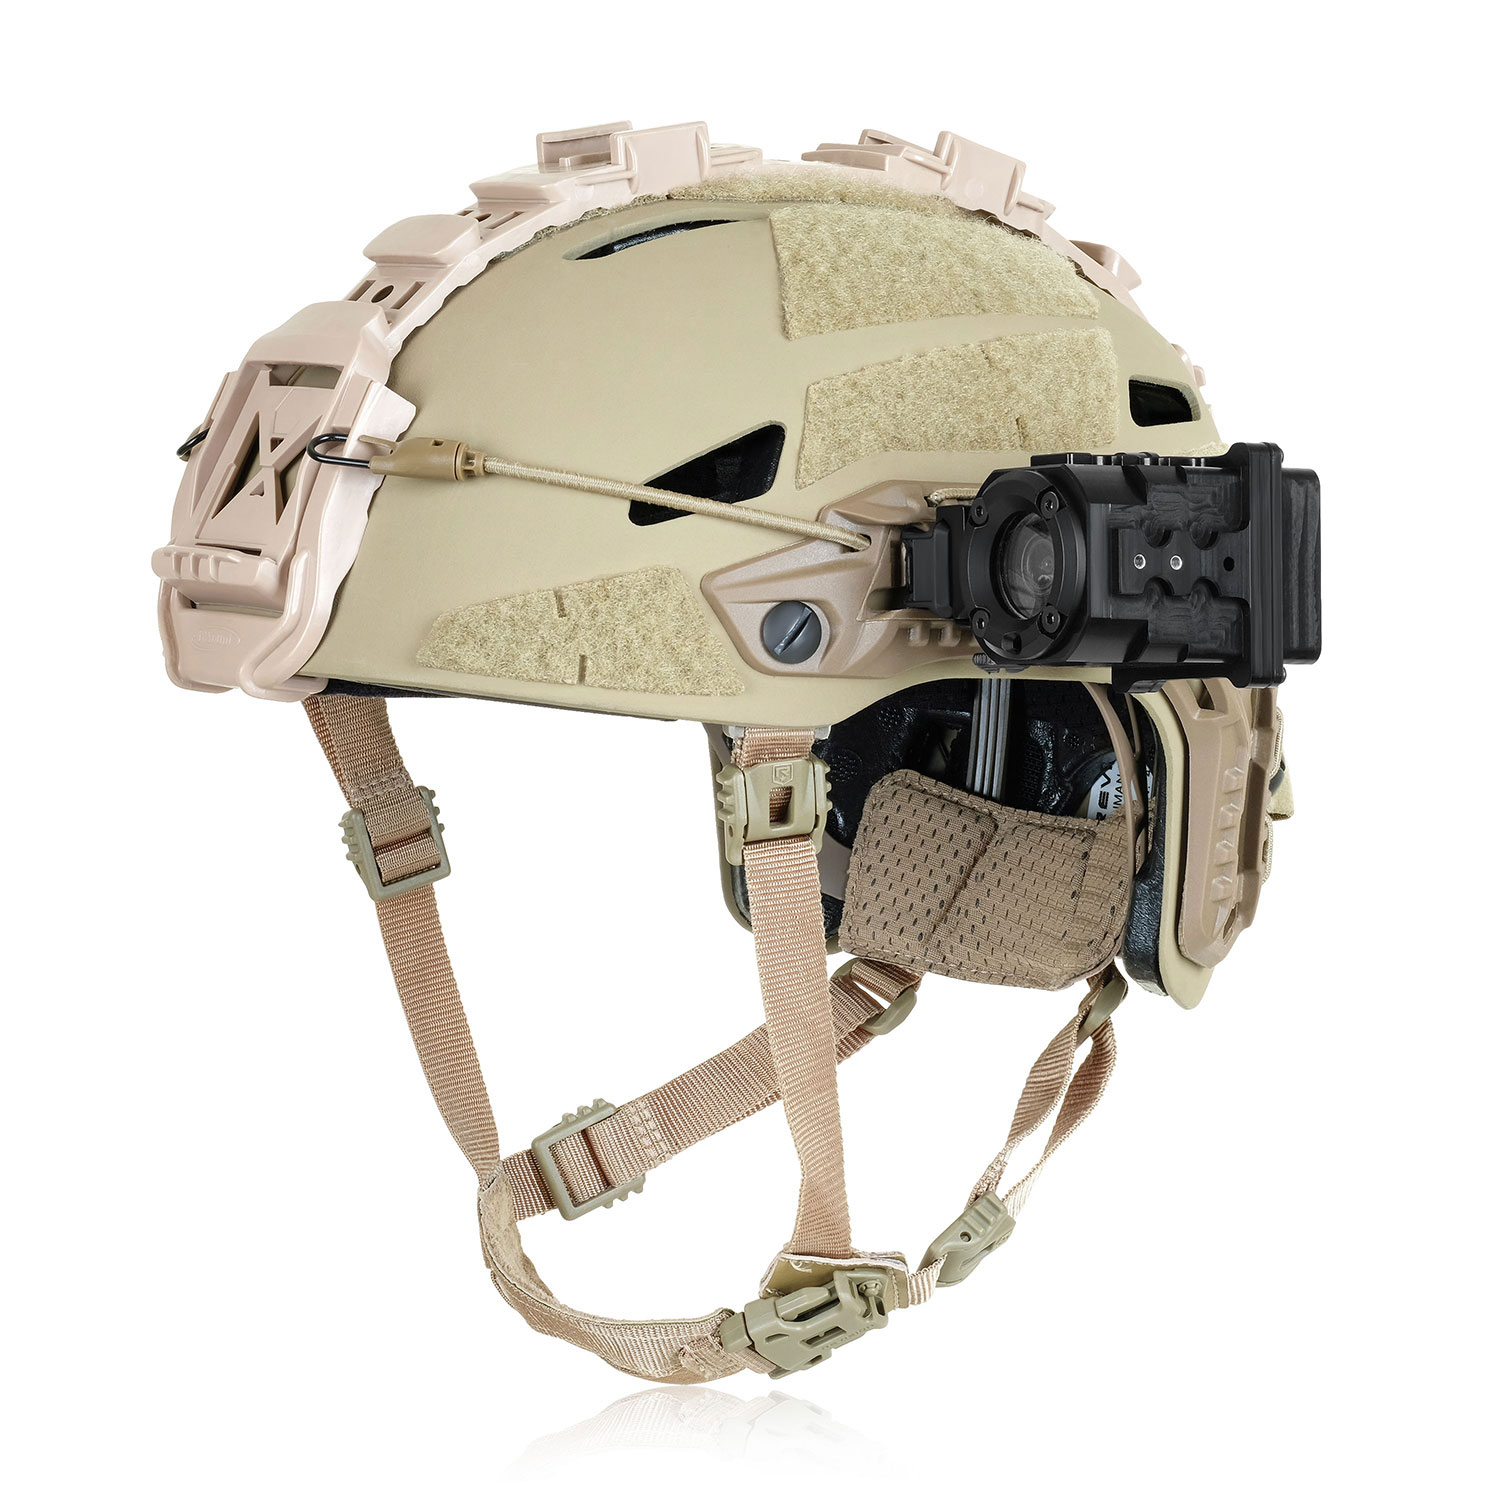 Rugged Helmet mount camera for the Military